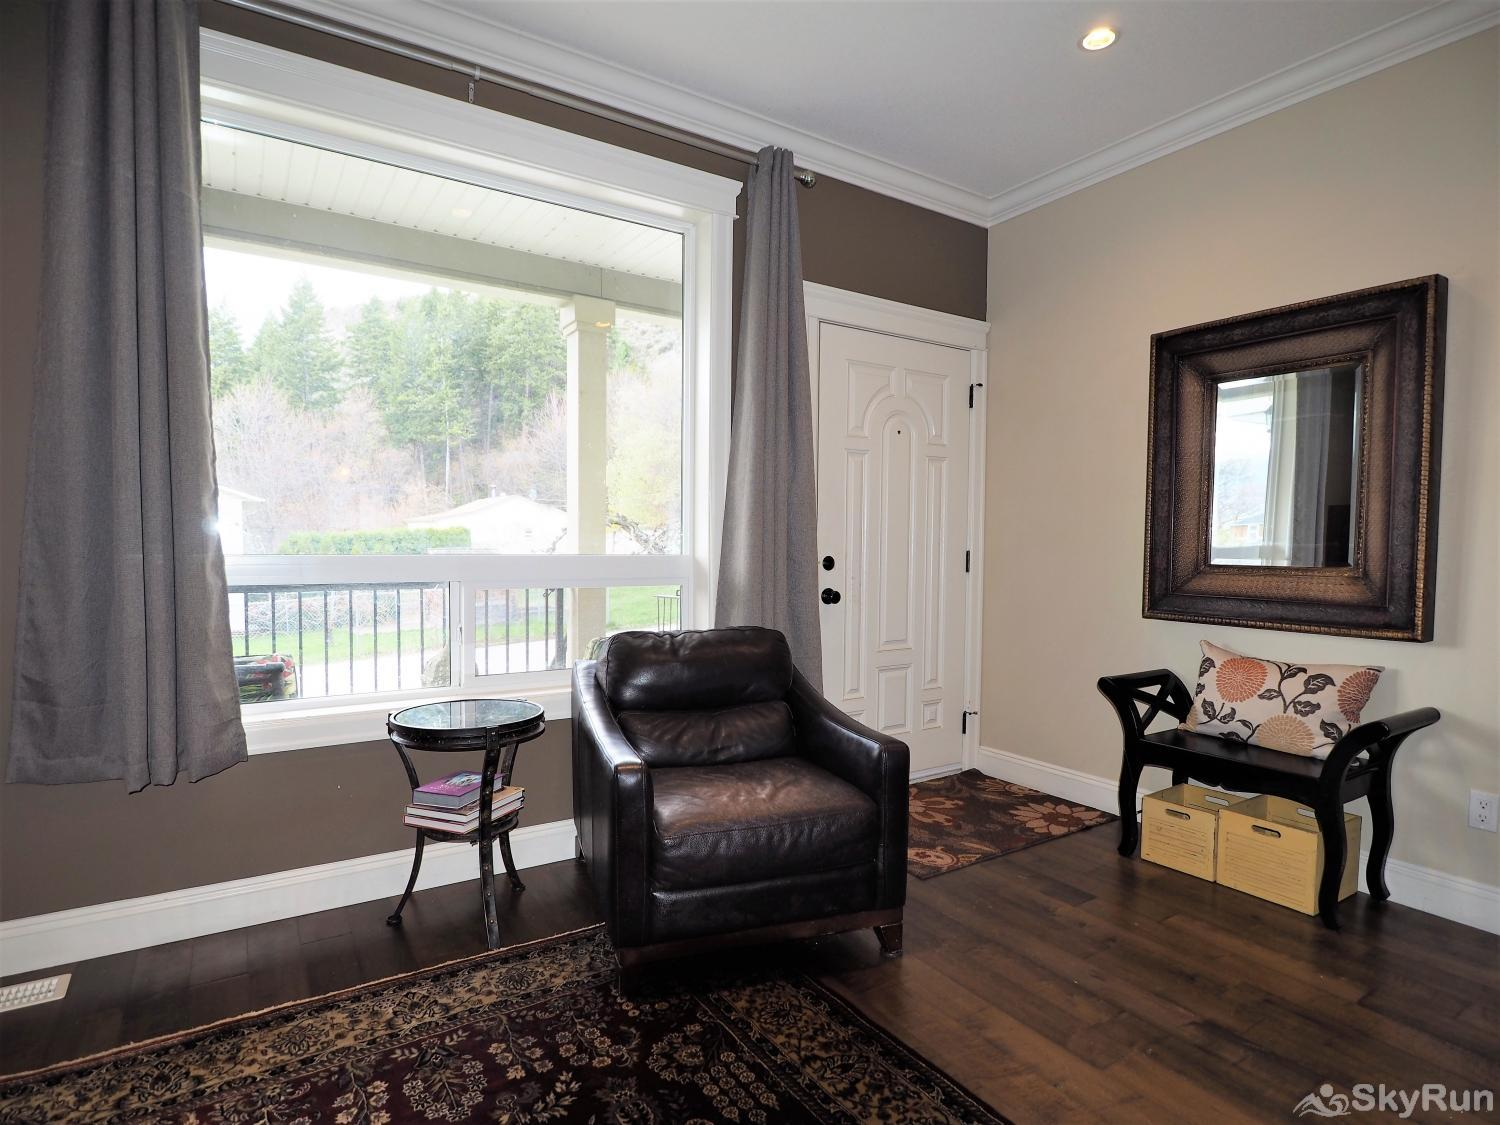 Old Summerland 3 bedroom home Beautiful view from the large window in the living room